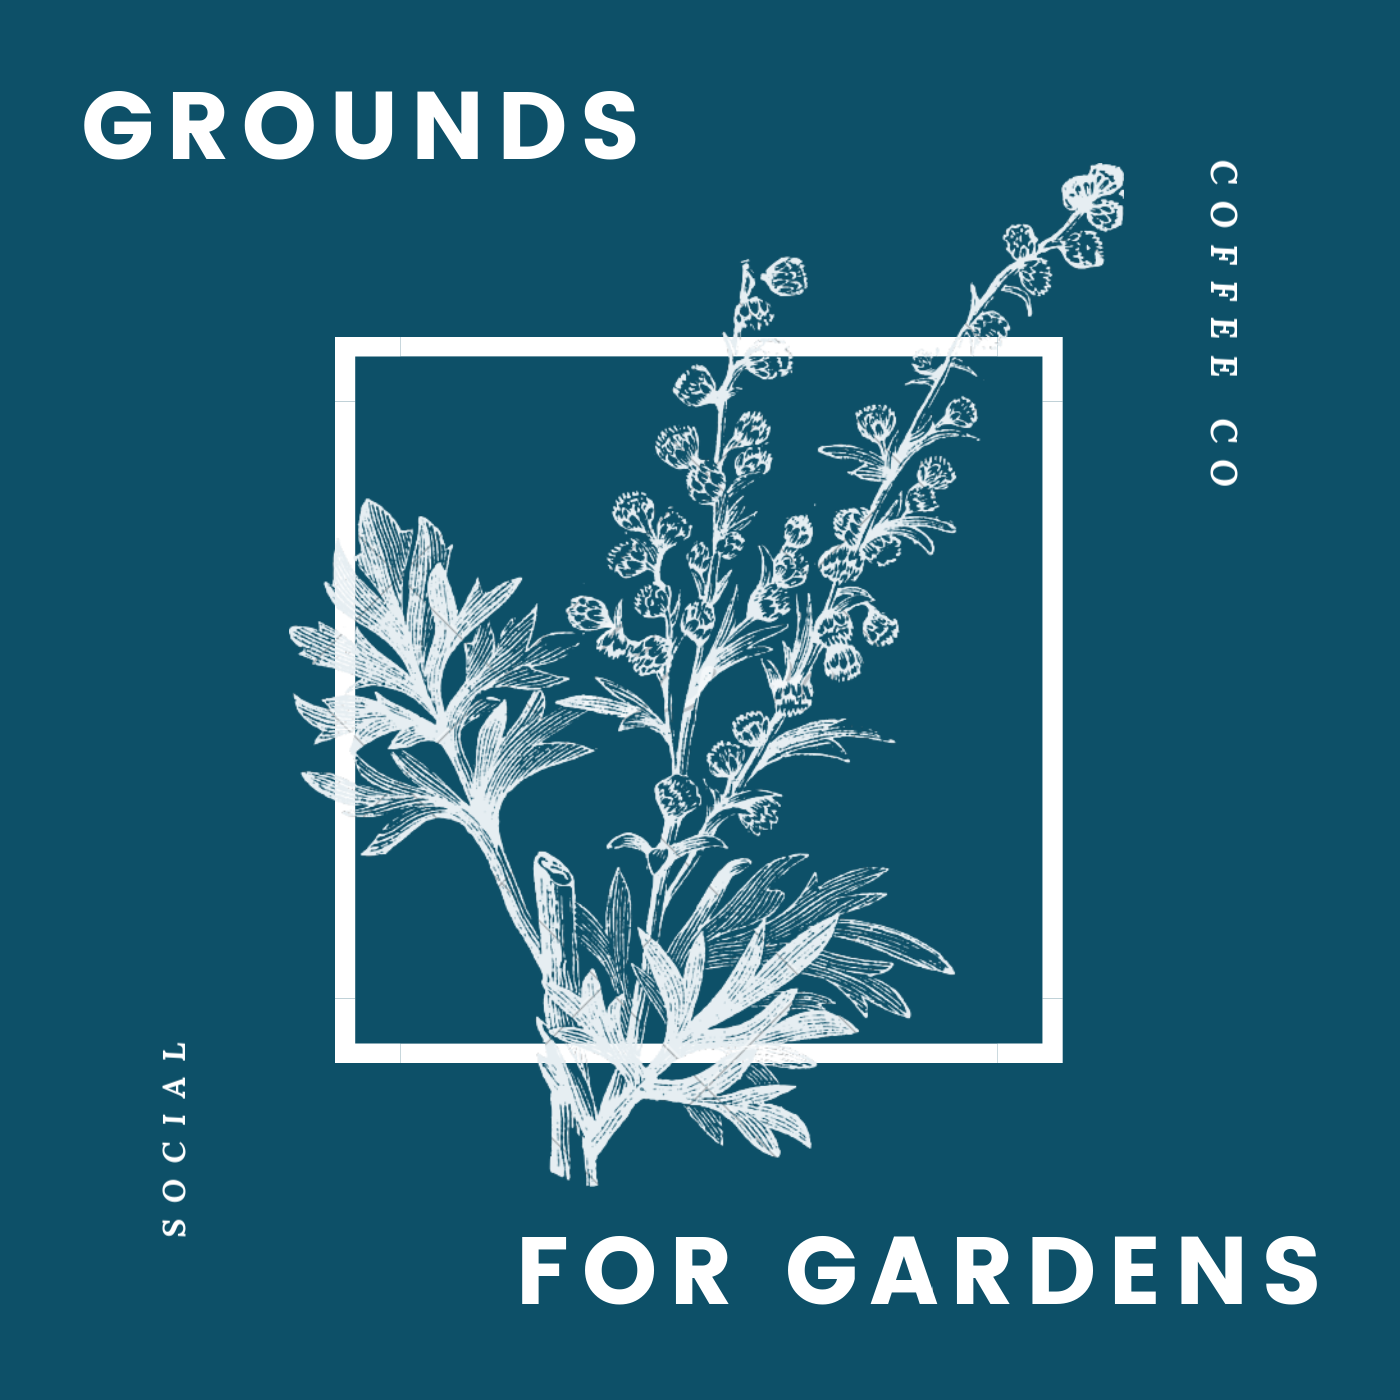 Come by the shop for free coffee grounds. You can always add coffee grounds to compost, but mixing it directly into the soil can help balance alkaline soil or give a boost of acidity for plants that prefer a lower pH, like hydrangeas or rhododendrons